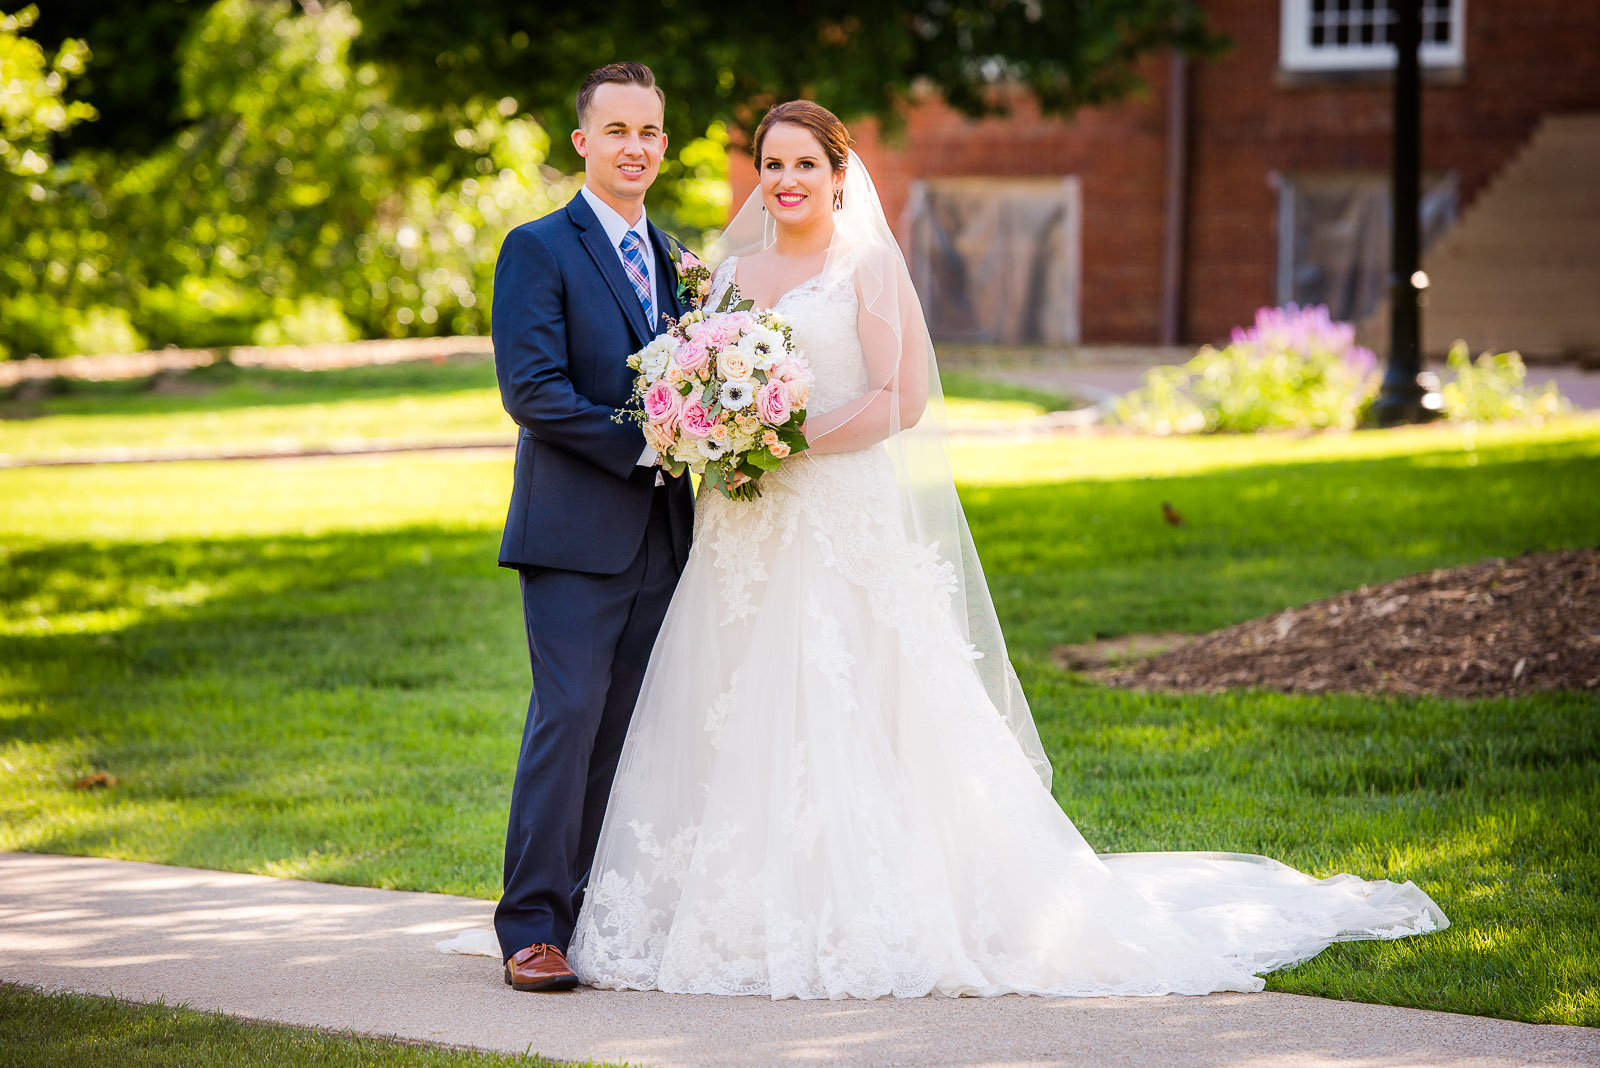 Eric_and_Christy_Photography_Blog_Wedding_Paige_Eric-40